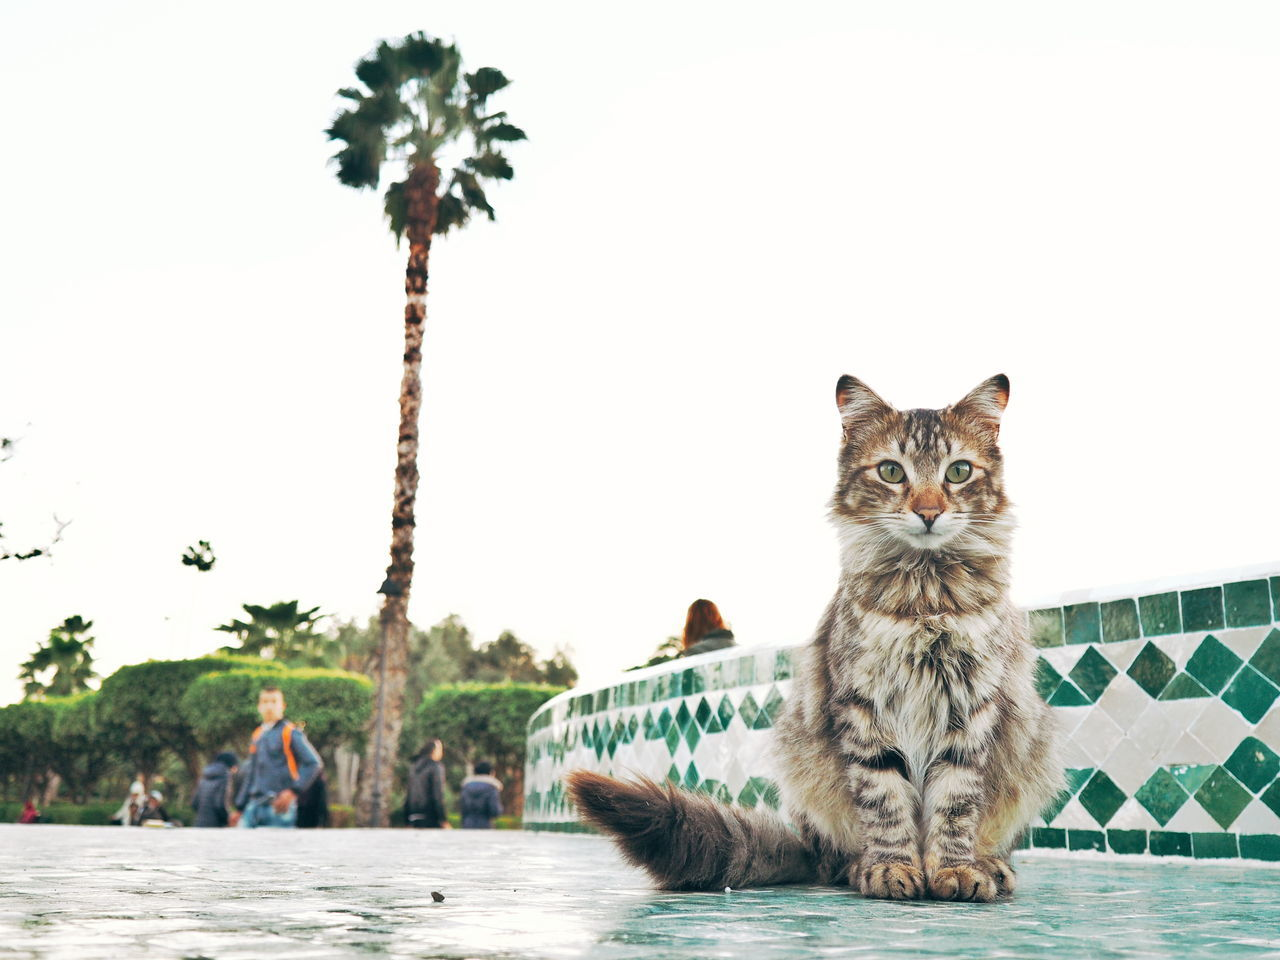 Animal Animal Wildlife Mammal Water River Animals In The Wild Looking At Camera Palm Tree Outdoors Portrait Feline Nature Tree Day Animal Themes No People Sky Cat Portrait Cat Street Cat Street Portrait Morocco 🇲🇦 Morocco Marrakech Neighborhood Map